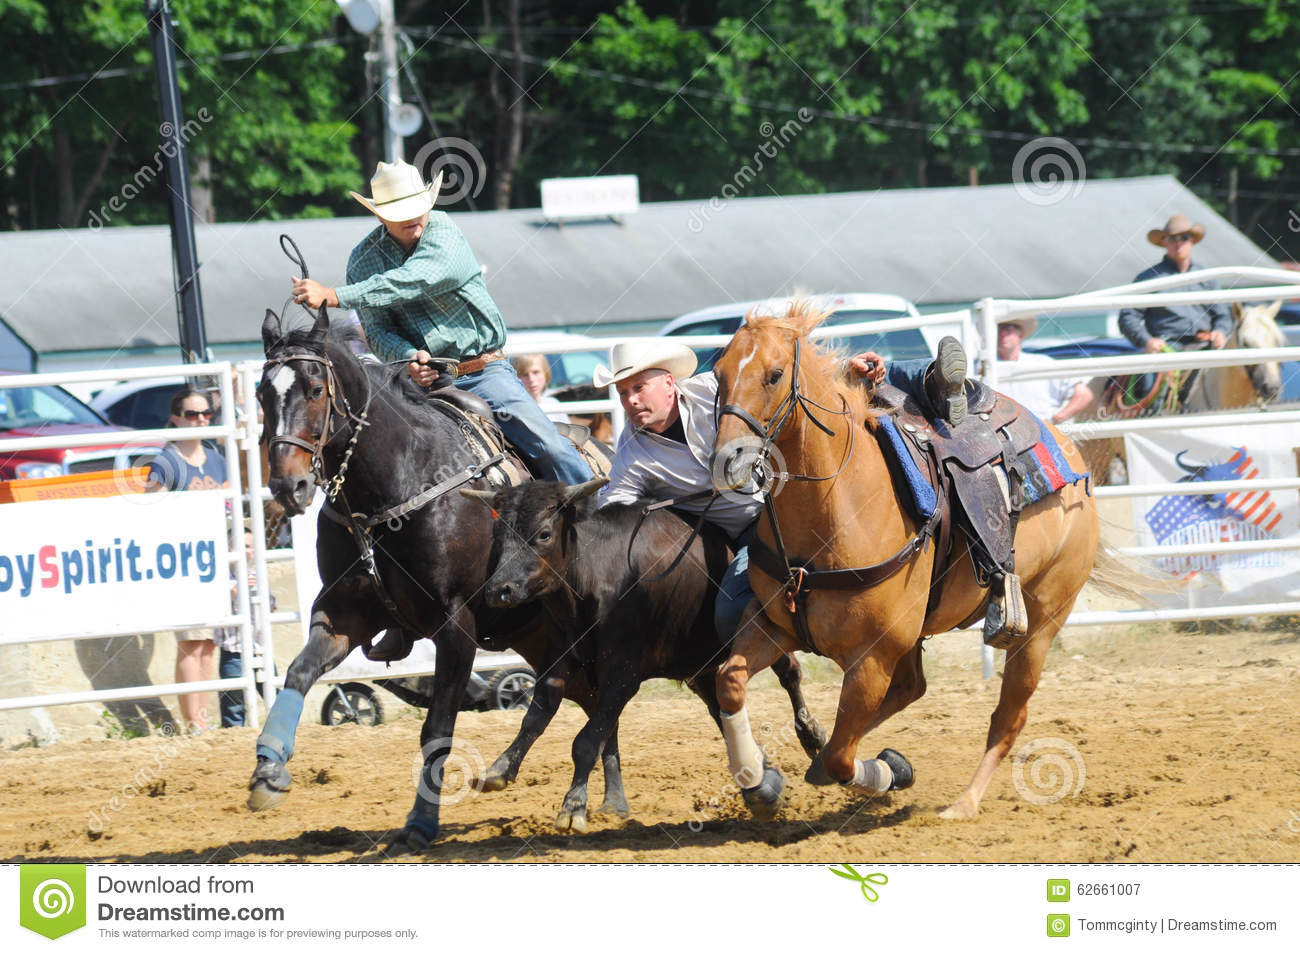 Marshfield Massachusetts June 24 2012 A Rodeo Cowboy